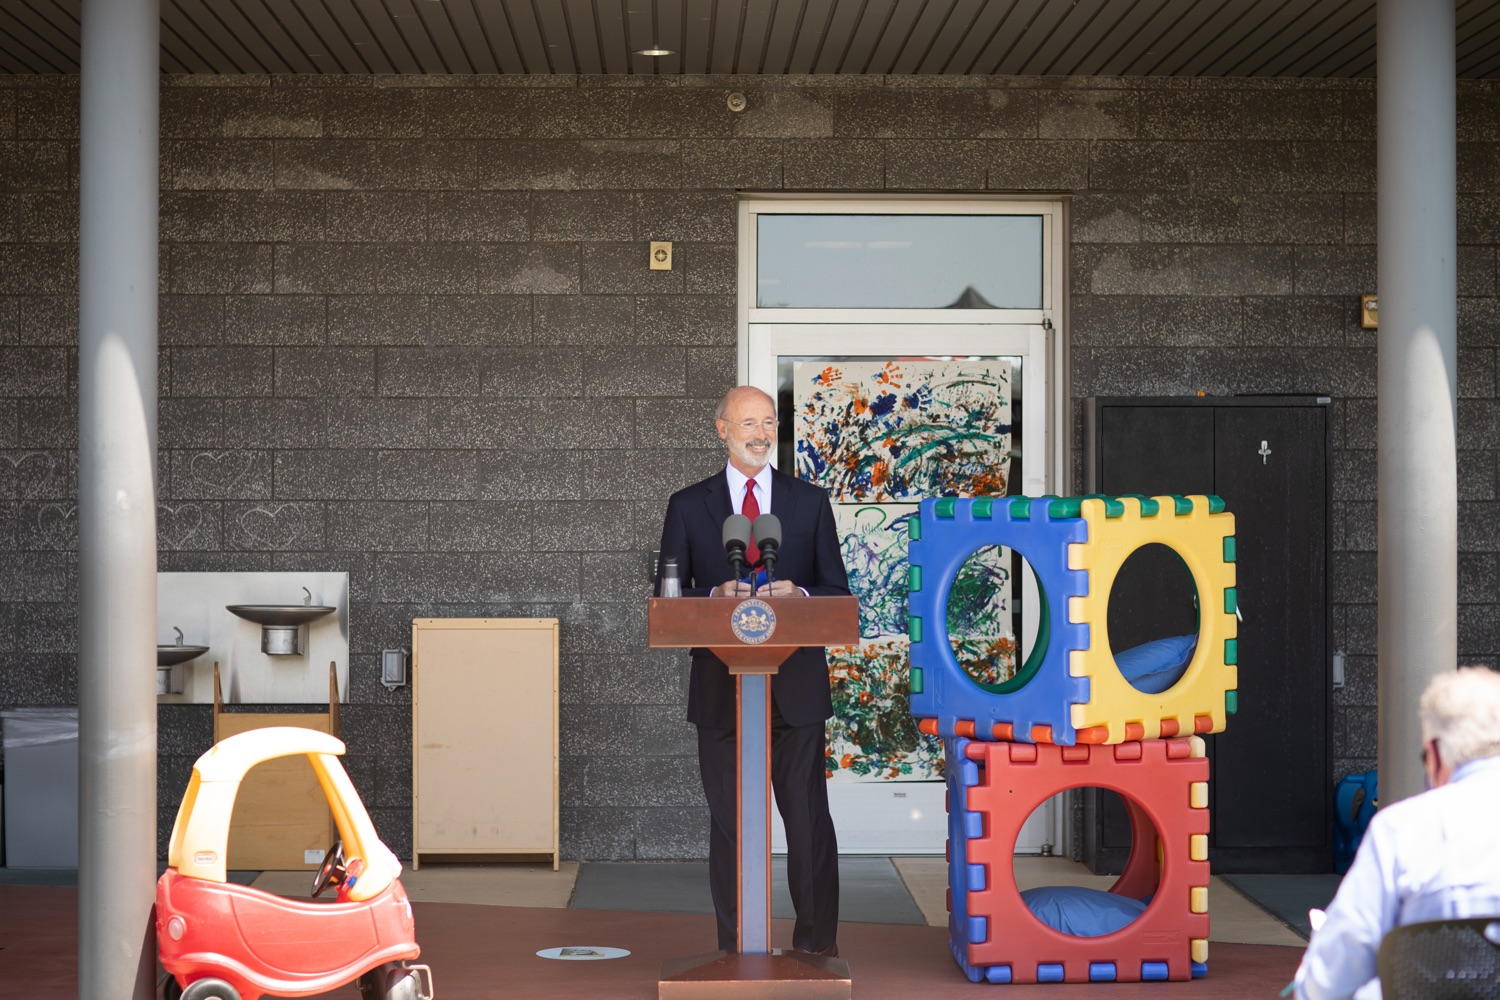 "<a href=""https://filesource.wostreaming.net/commonwealthofpa/photo/18143_gov_cares_dz_16.jpg"" target=""_blank"">⇣ Download Photo<br></a>Pennsylvania Governor Tom Wolf speaking with the press.  Governor Tom Wolf visited the child care center at PSECU headquarters in Harrisburg today to announce $53 million in additional financial support for child care providers that have suffered during COVID-19.  Harrisburg, PA  July 6, 2020.."